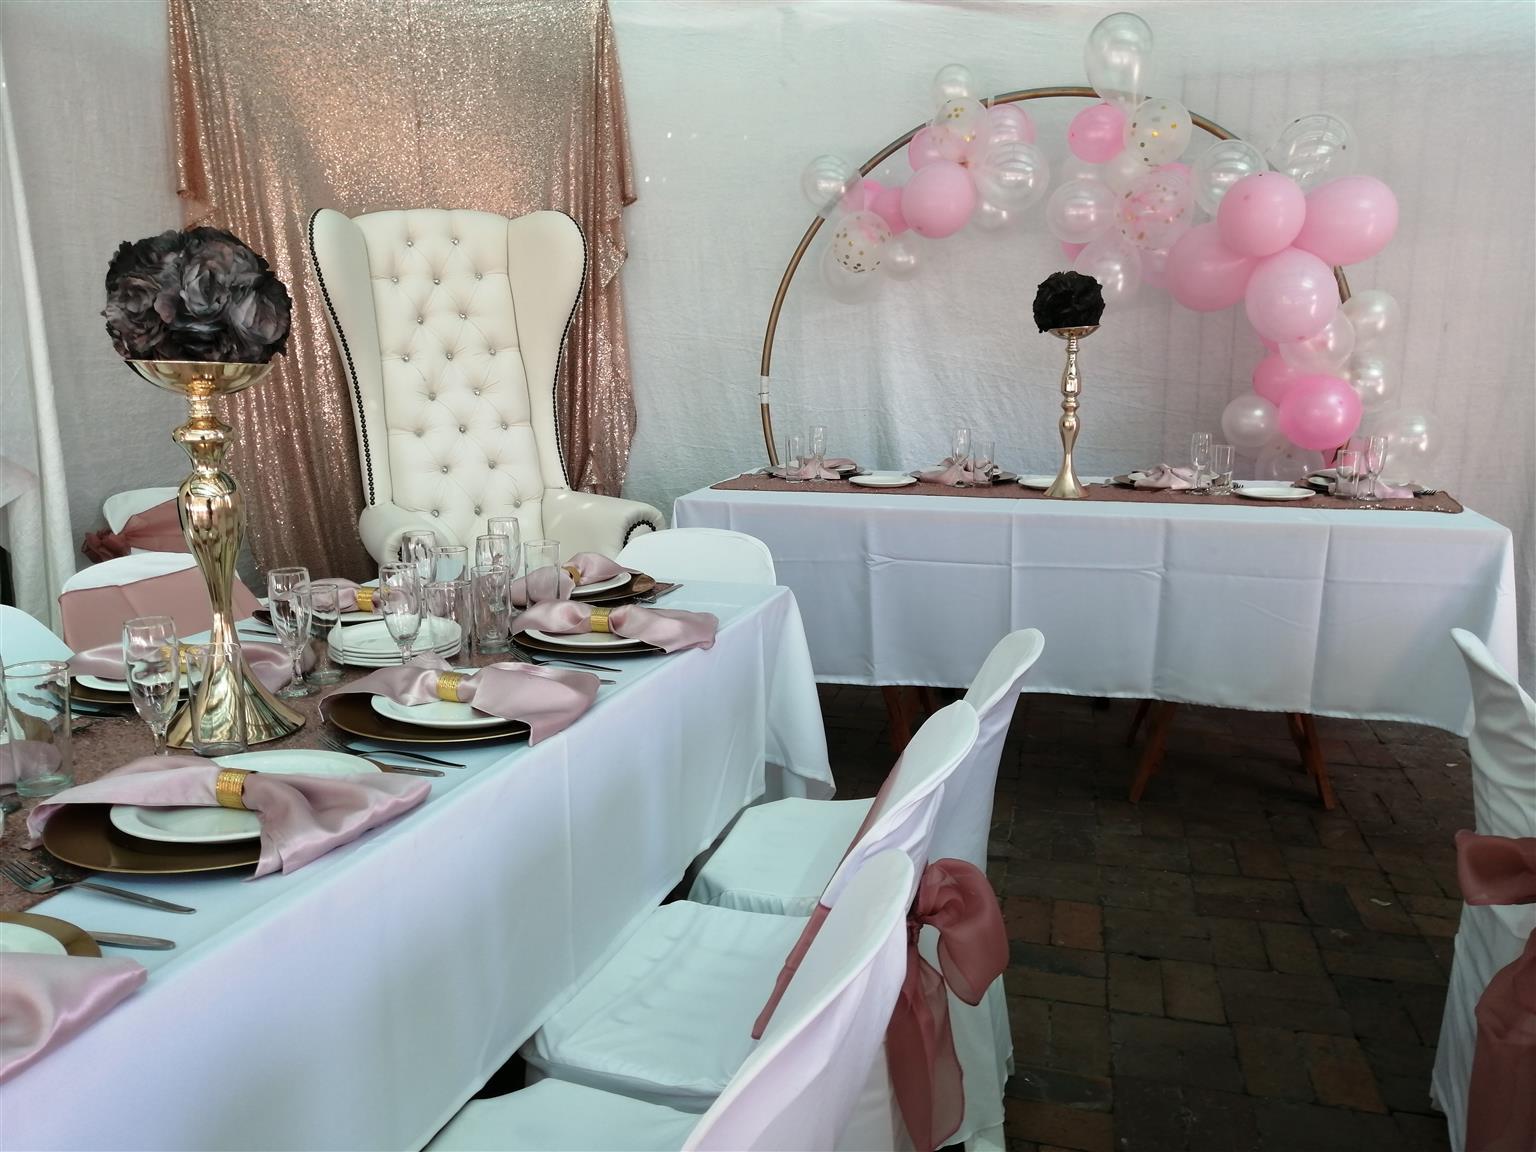 Plan your specific event with us